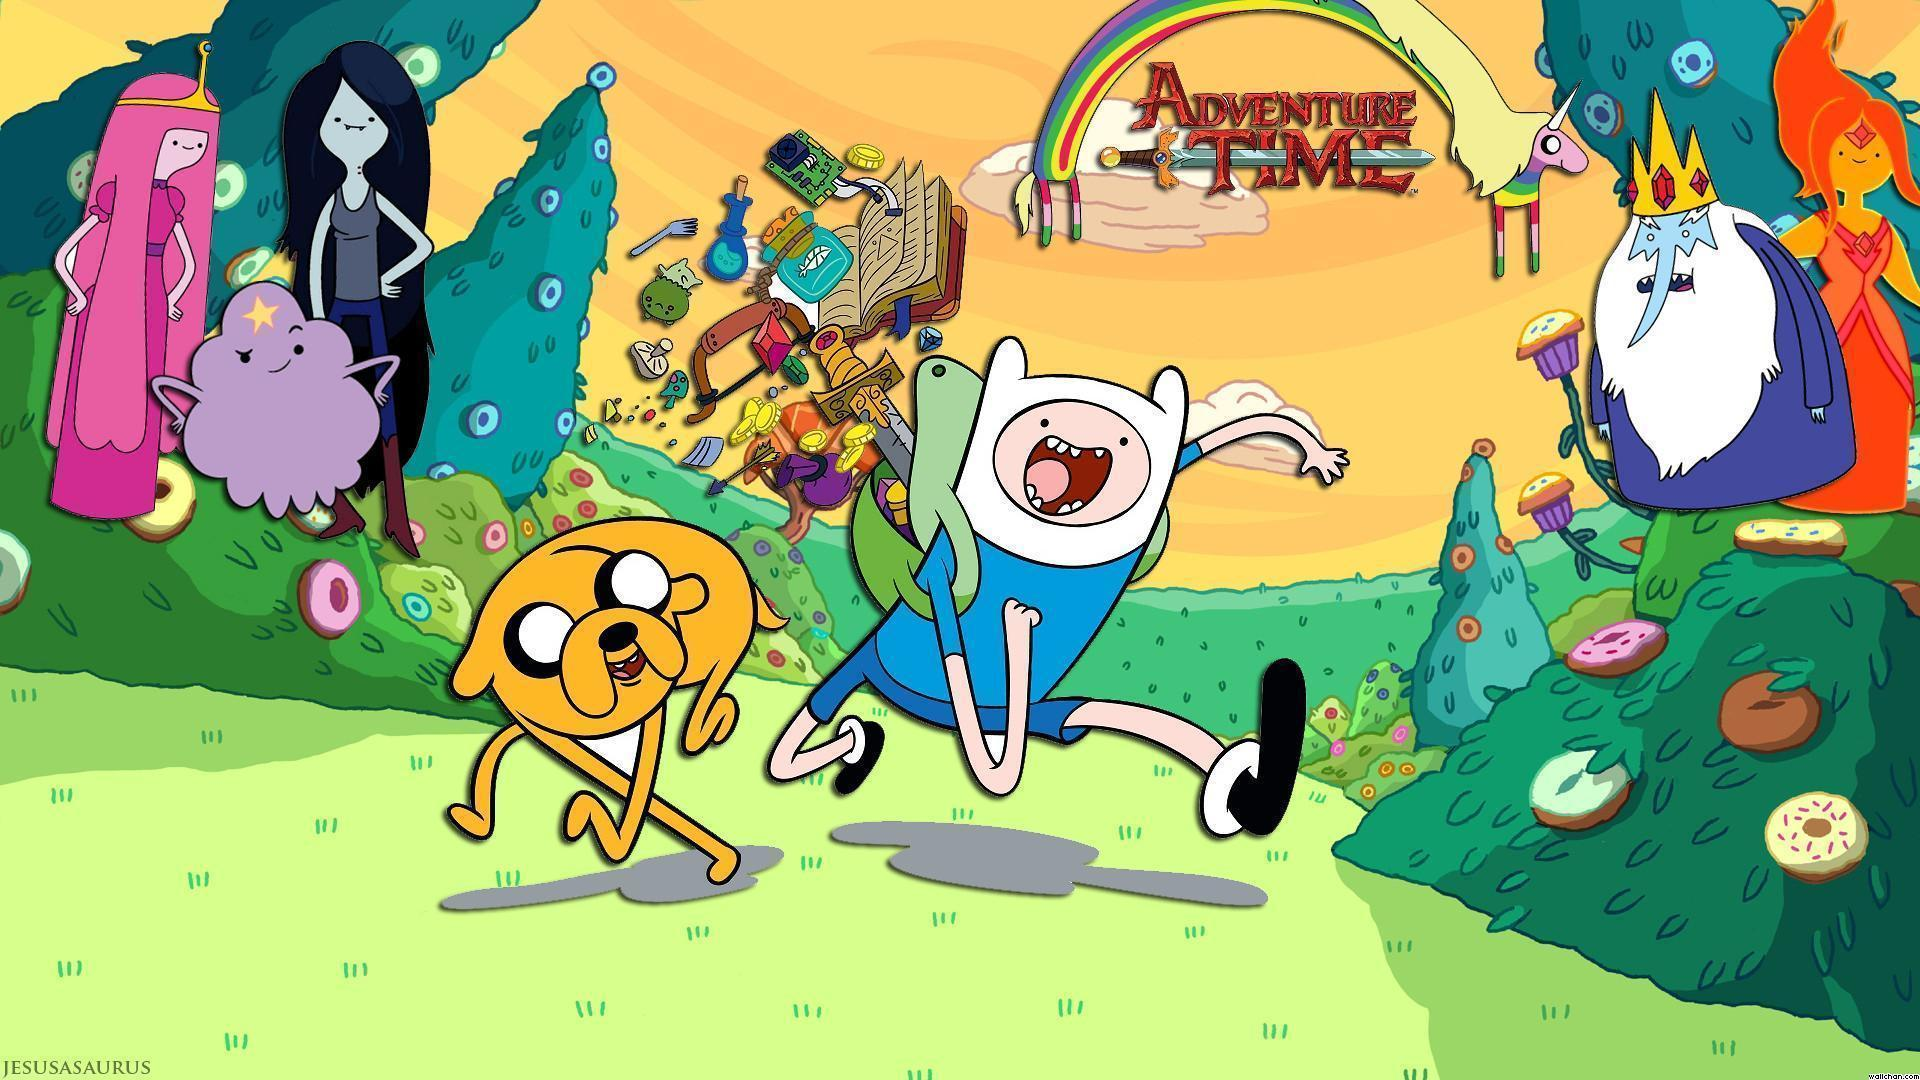 adventure time wallpapers download - photo #5